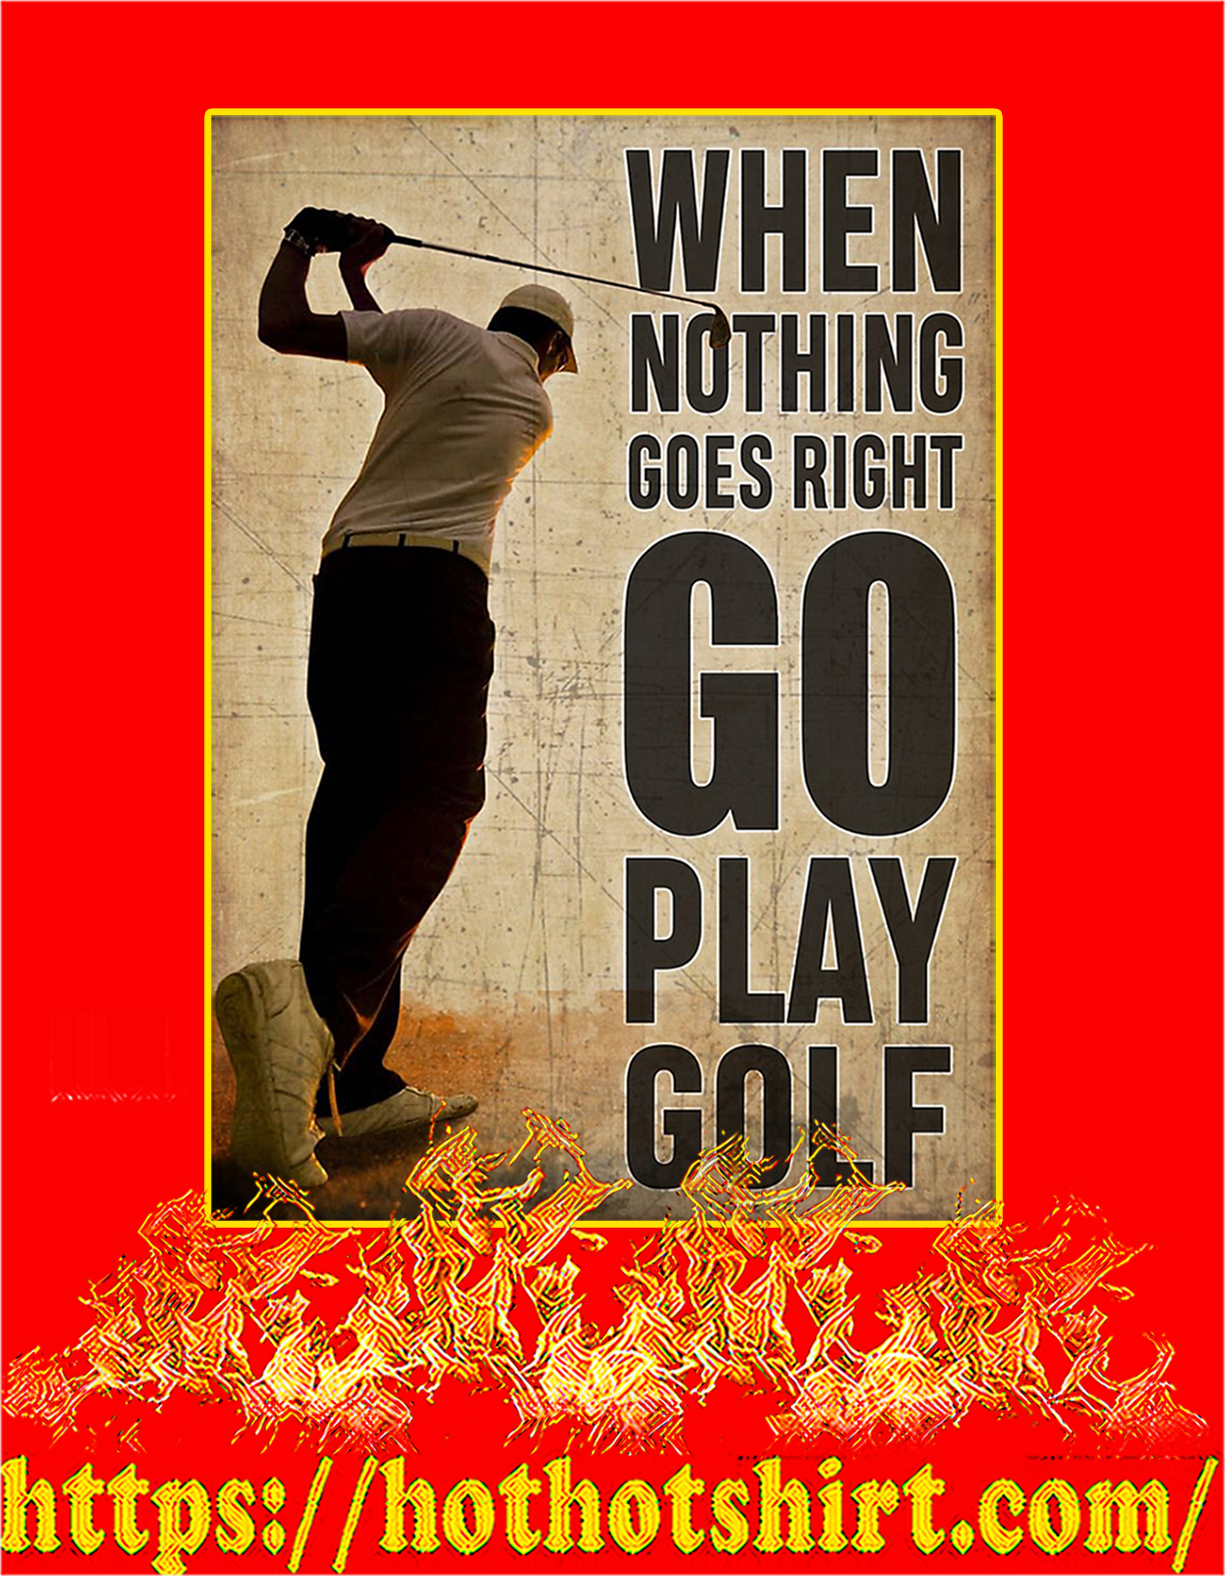 When nothing goes right go play golf poster - A4